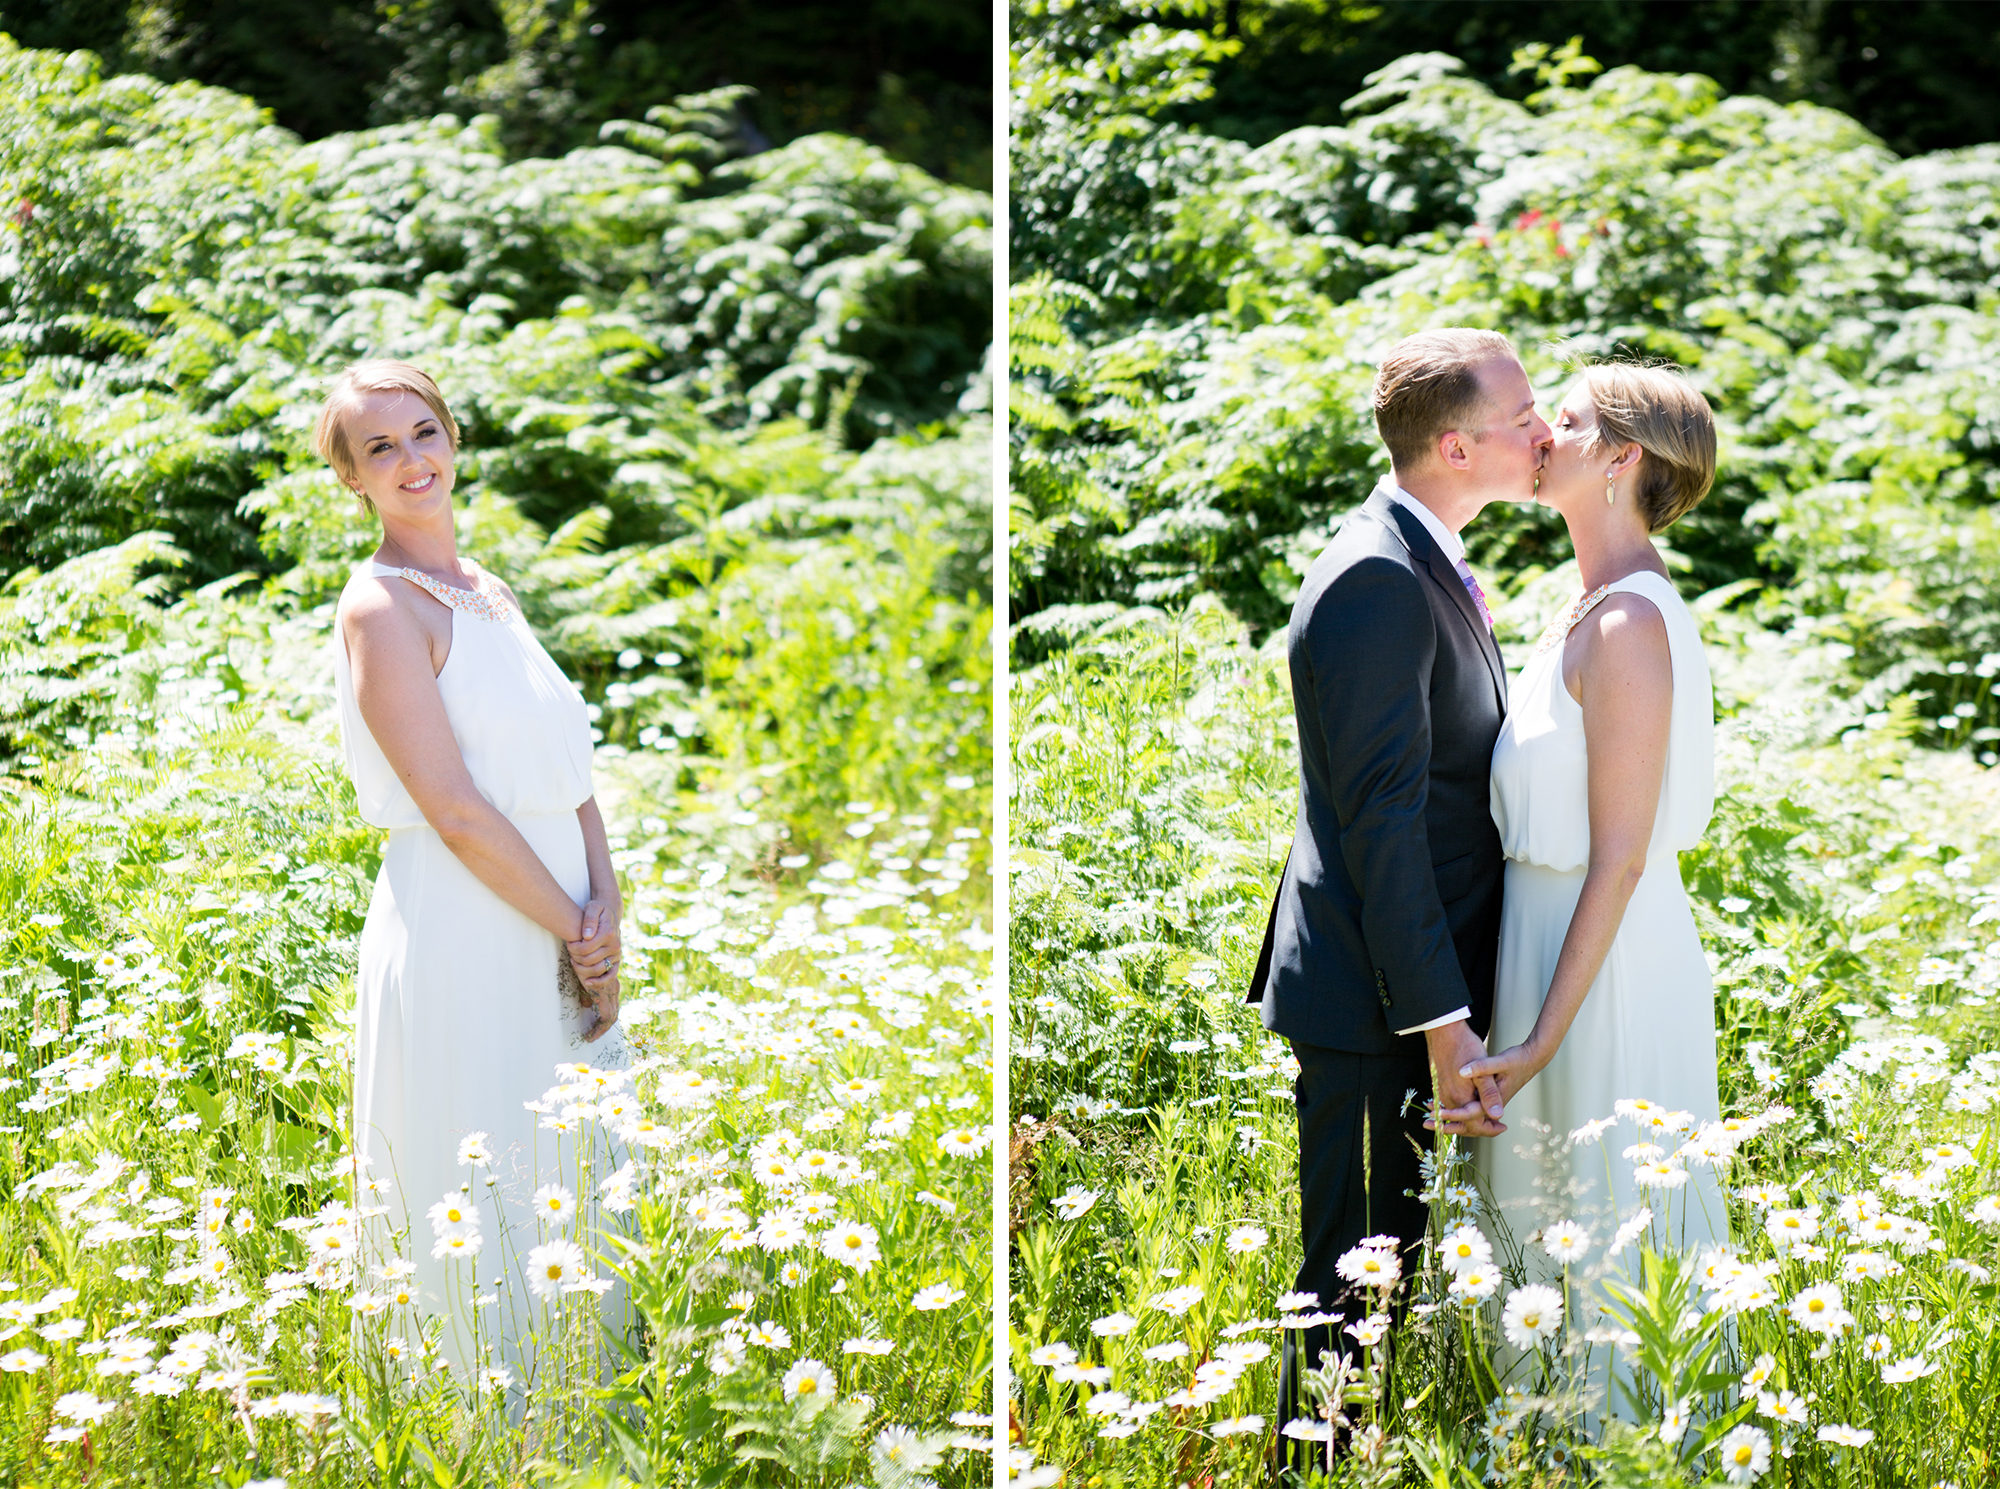 Bride Groom Daisy Hope Wedding British Columbia American Creek Lodge Zsuzsi Pal Photography